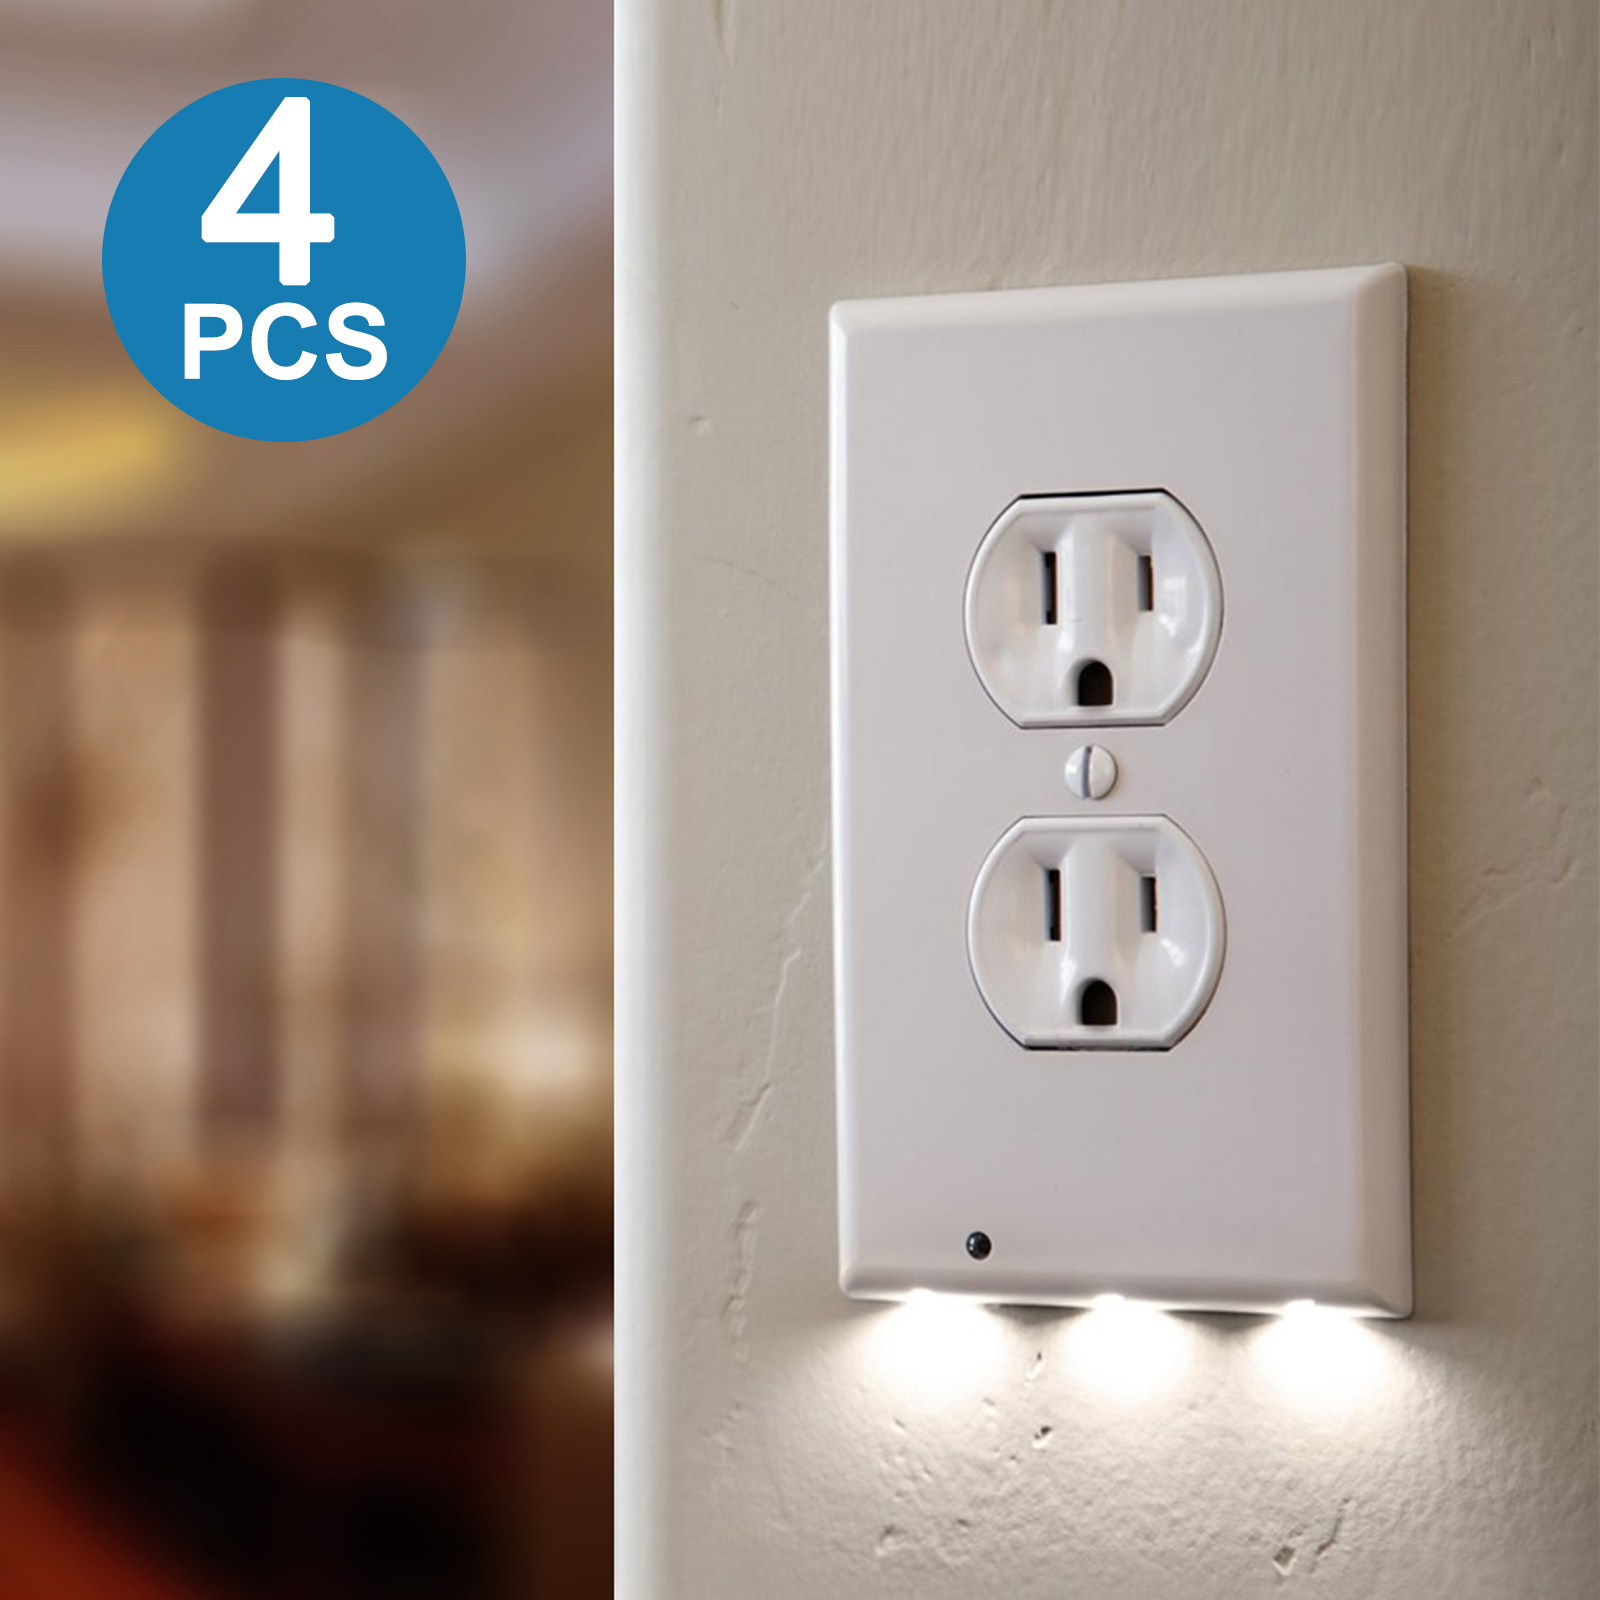 Led Night Light Wall Outlet Duplex Cover Outlet Covers With Led